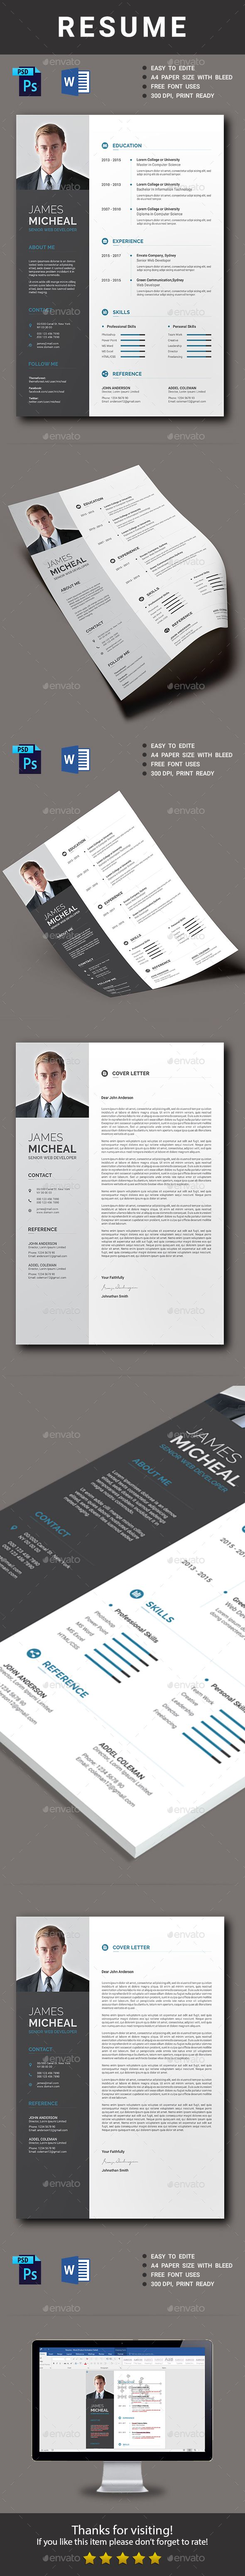 Cv ideas Resume Cv template Template